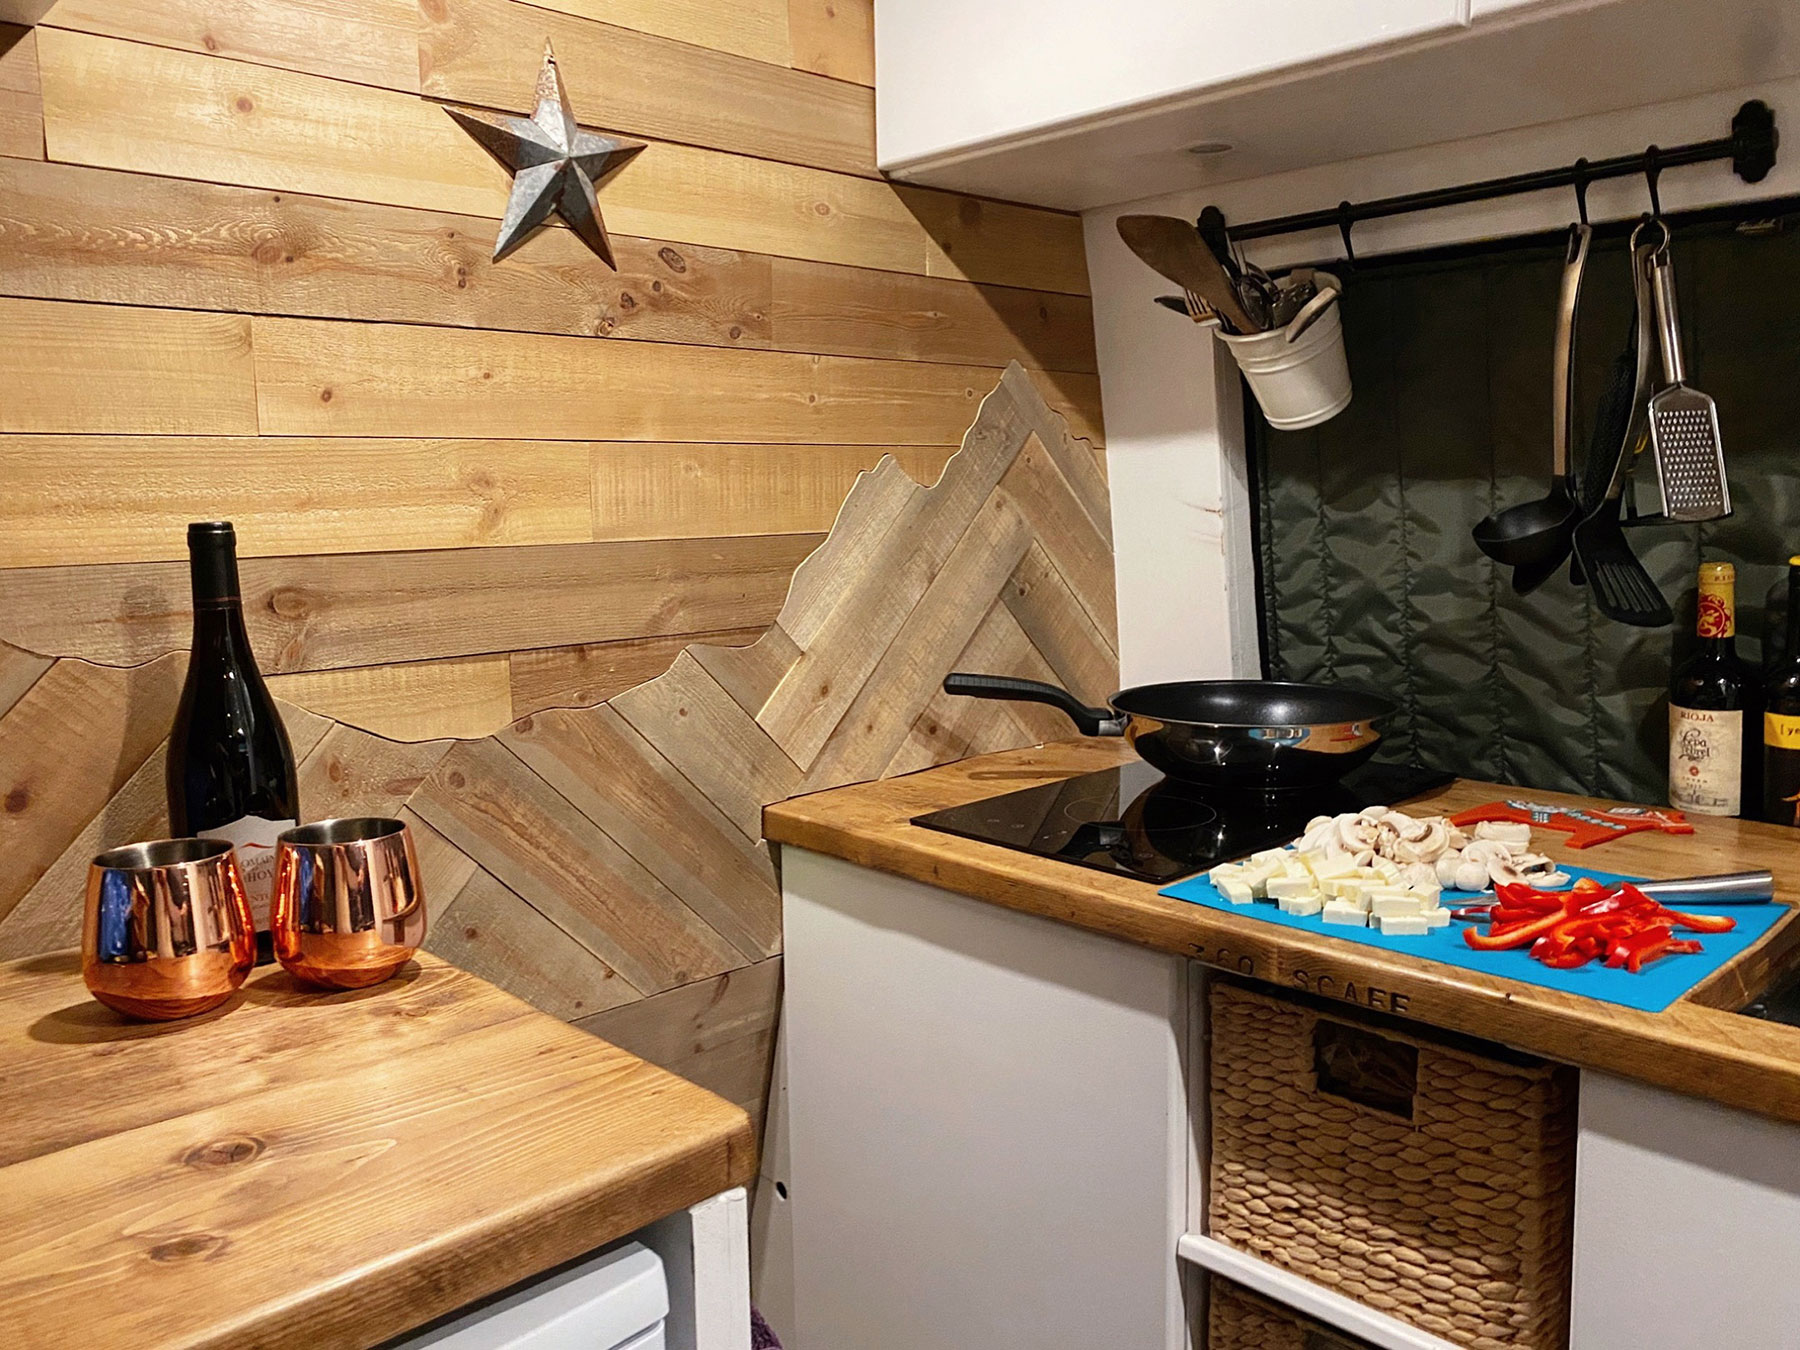 Cooking on Induction in a Van: The Pros and Cons